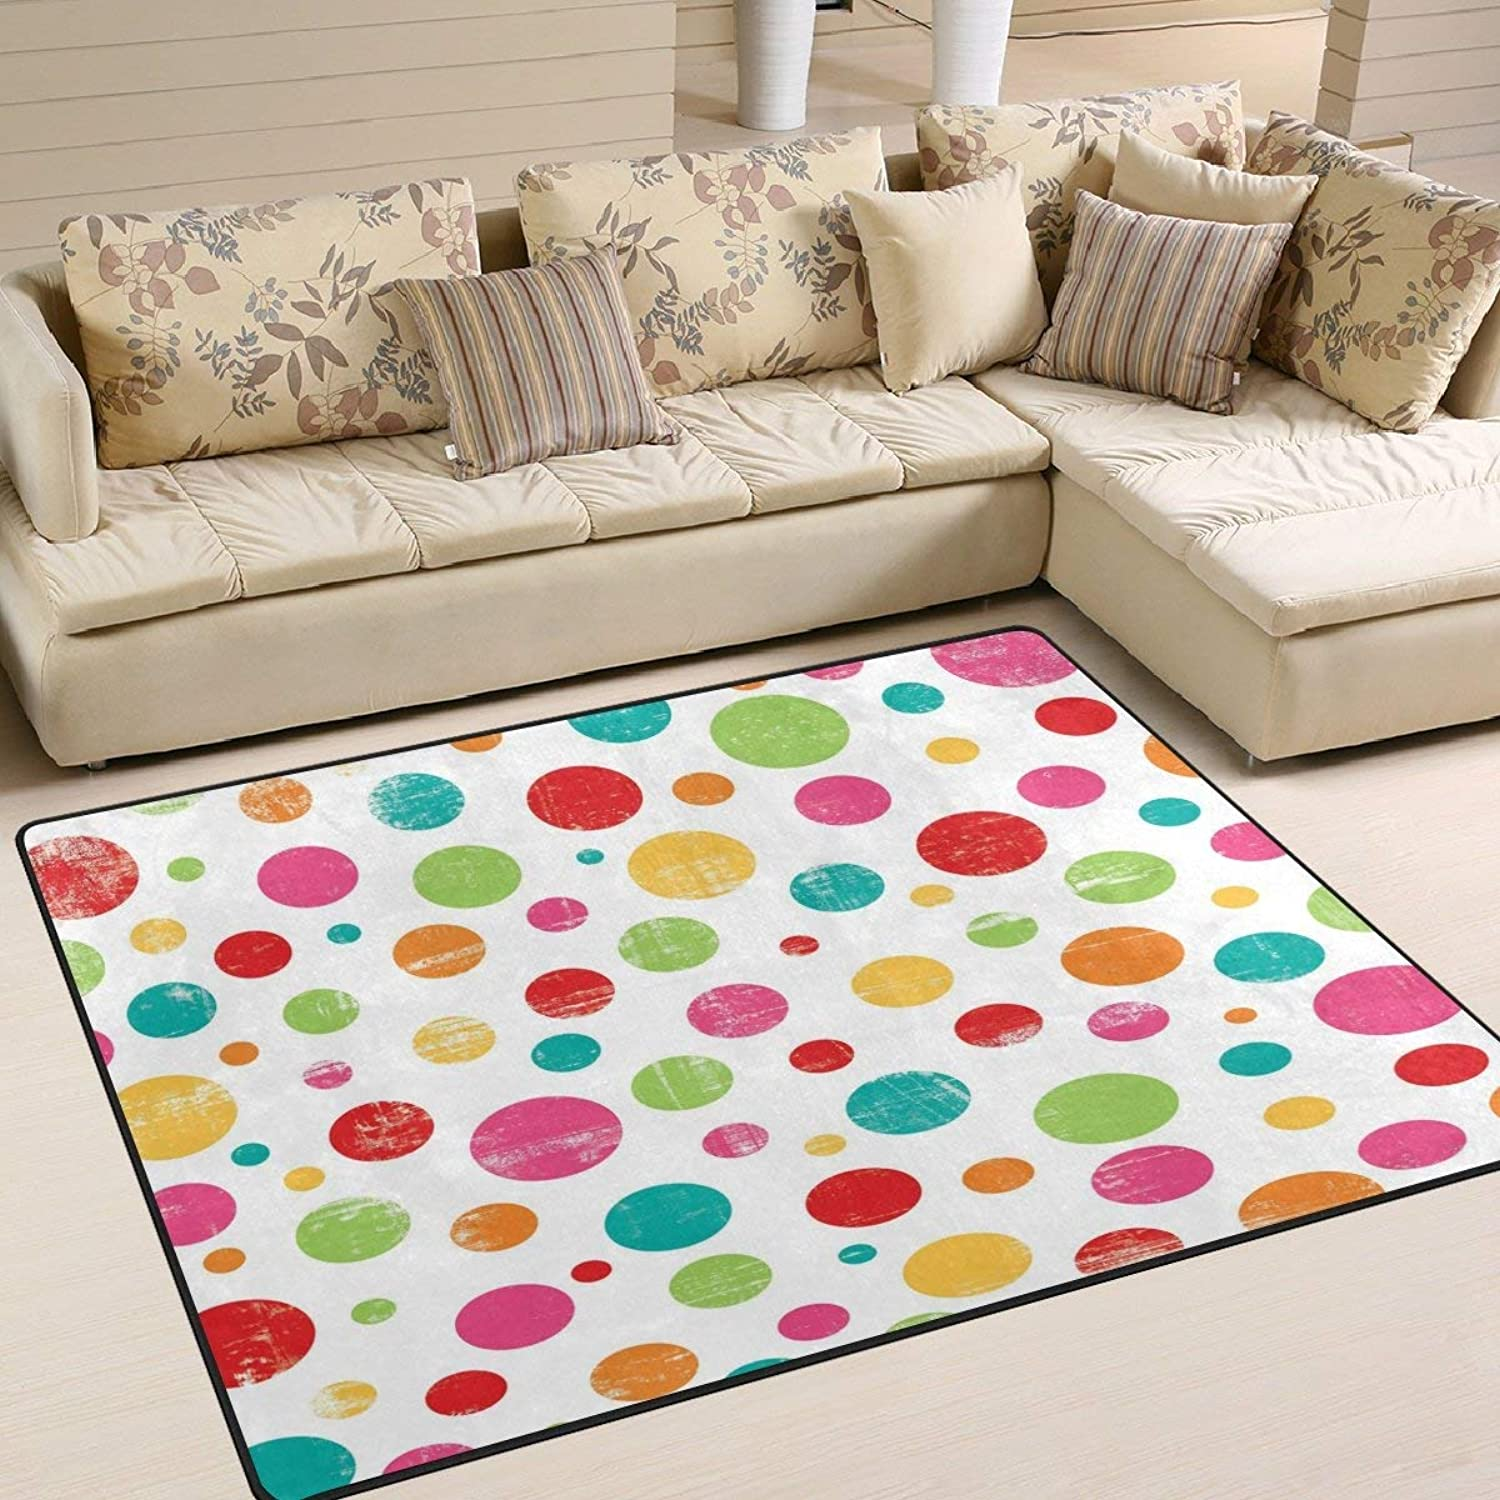 Vintage colorful Polka Dot Mat for Floor Mat Rug Indoor Front Door Kitchen and Living Room Bedroom Mats Rubber Non Slip